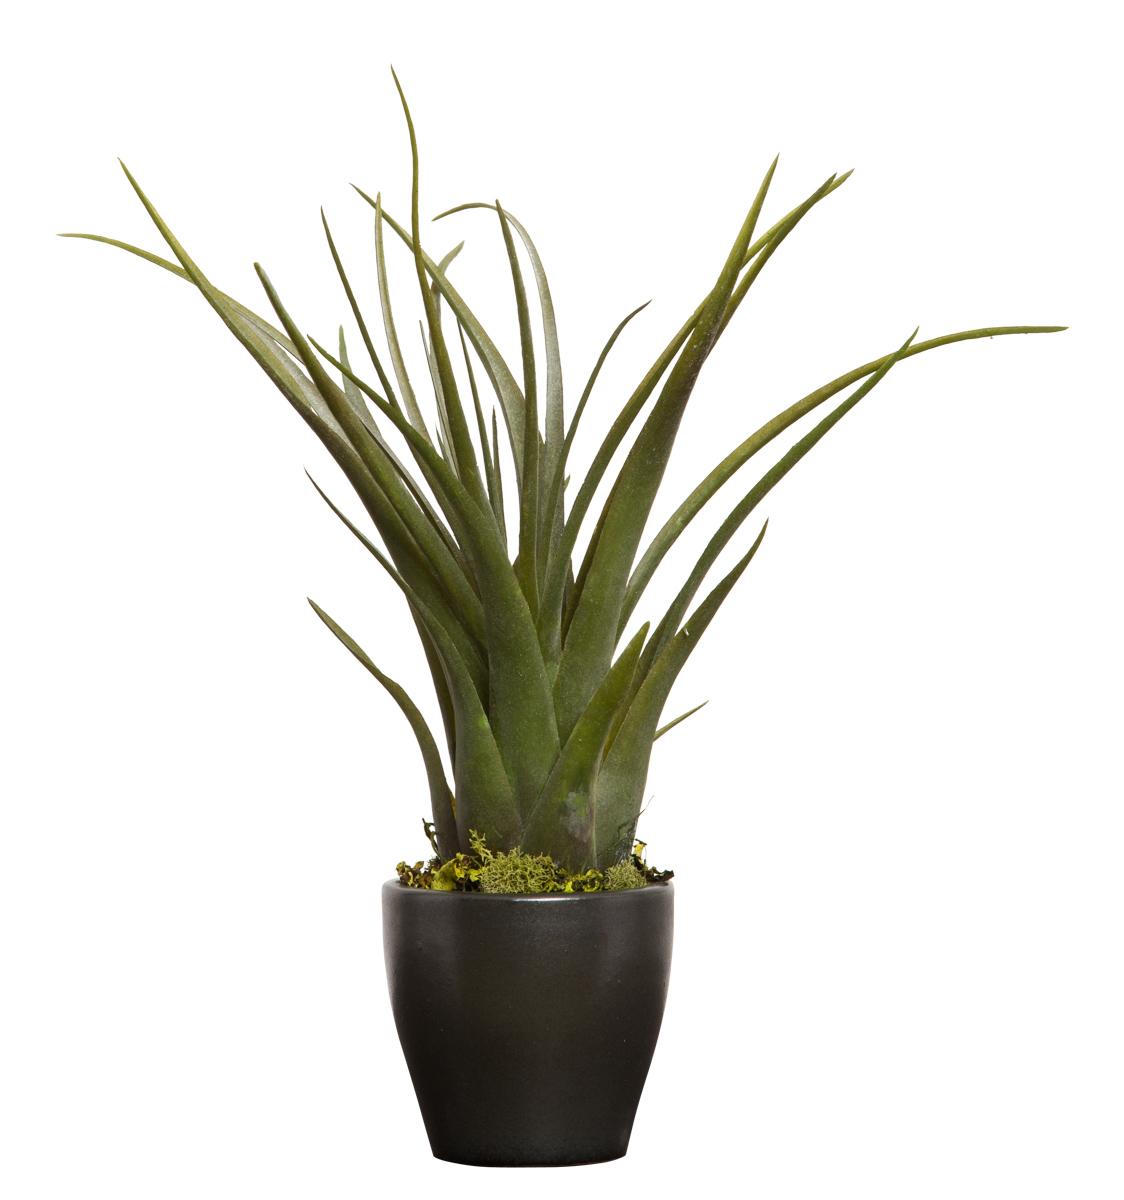 LG TILLANDSIA IN BLACK POT